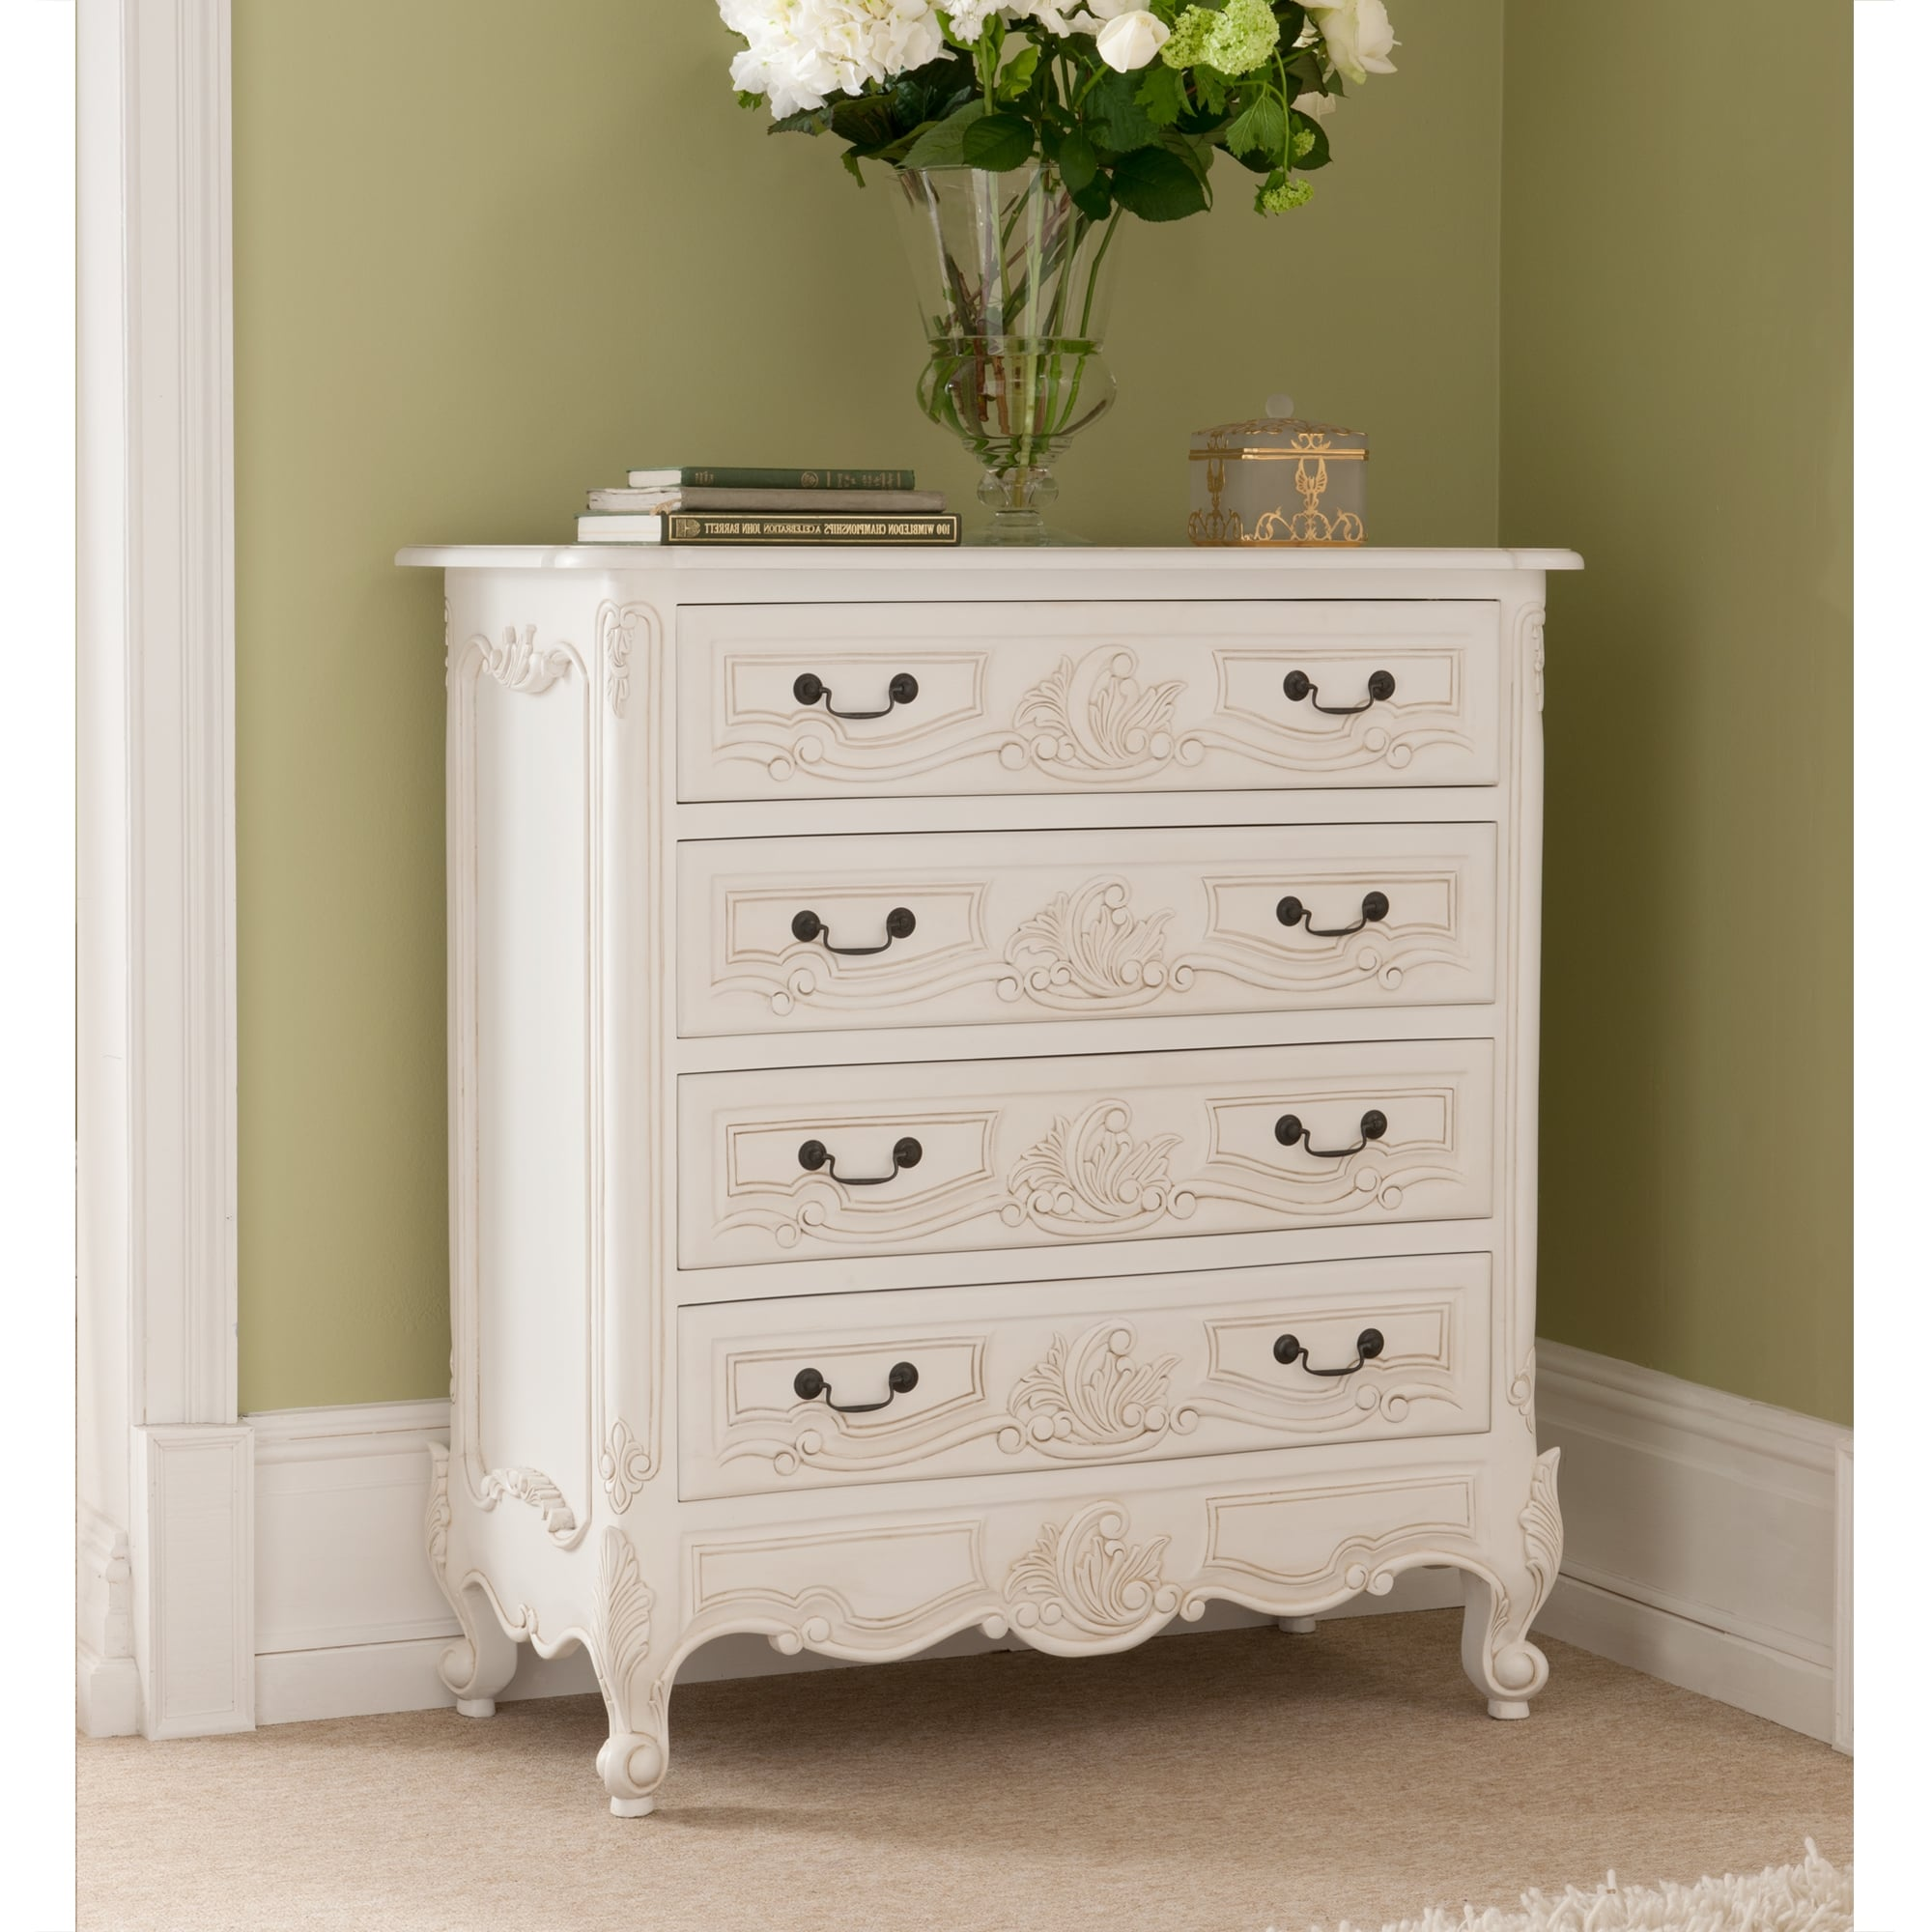 Rococo antique french chest of drawers works marvelous for French style bedroom furniture